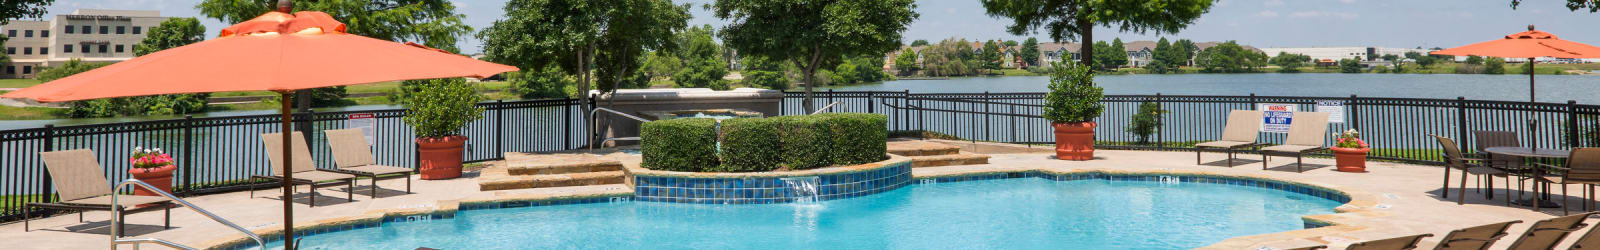 Pet friendly at Crescent Cove at Lakepointe in Lewisville, Texas